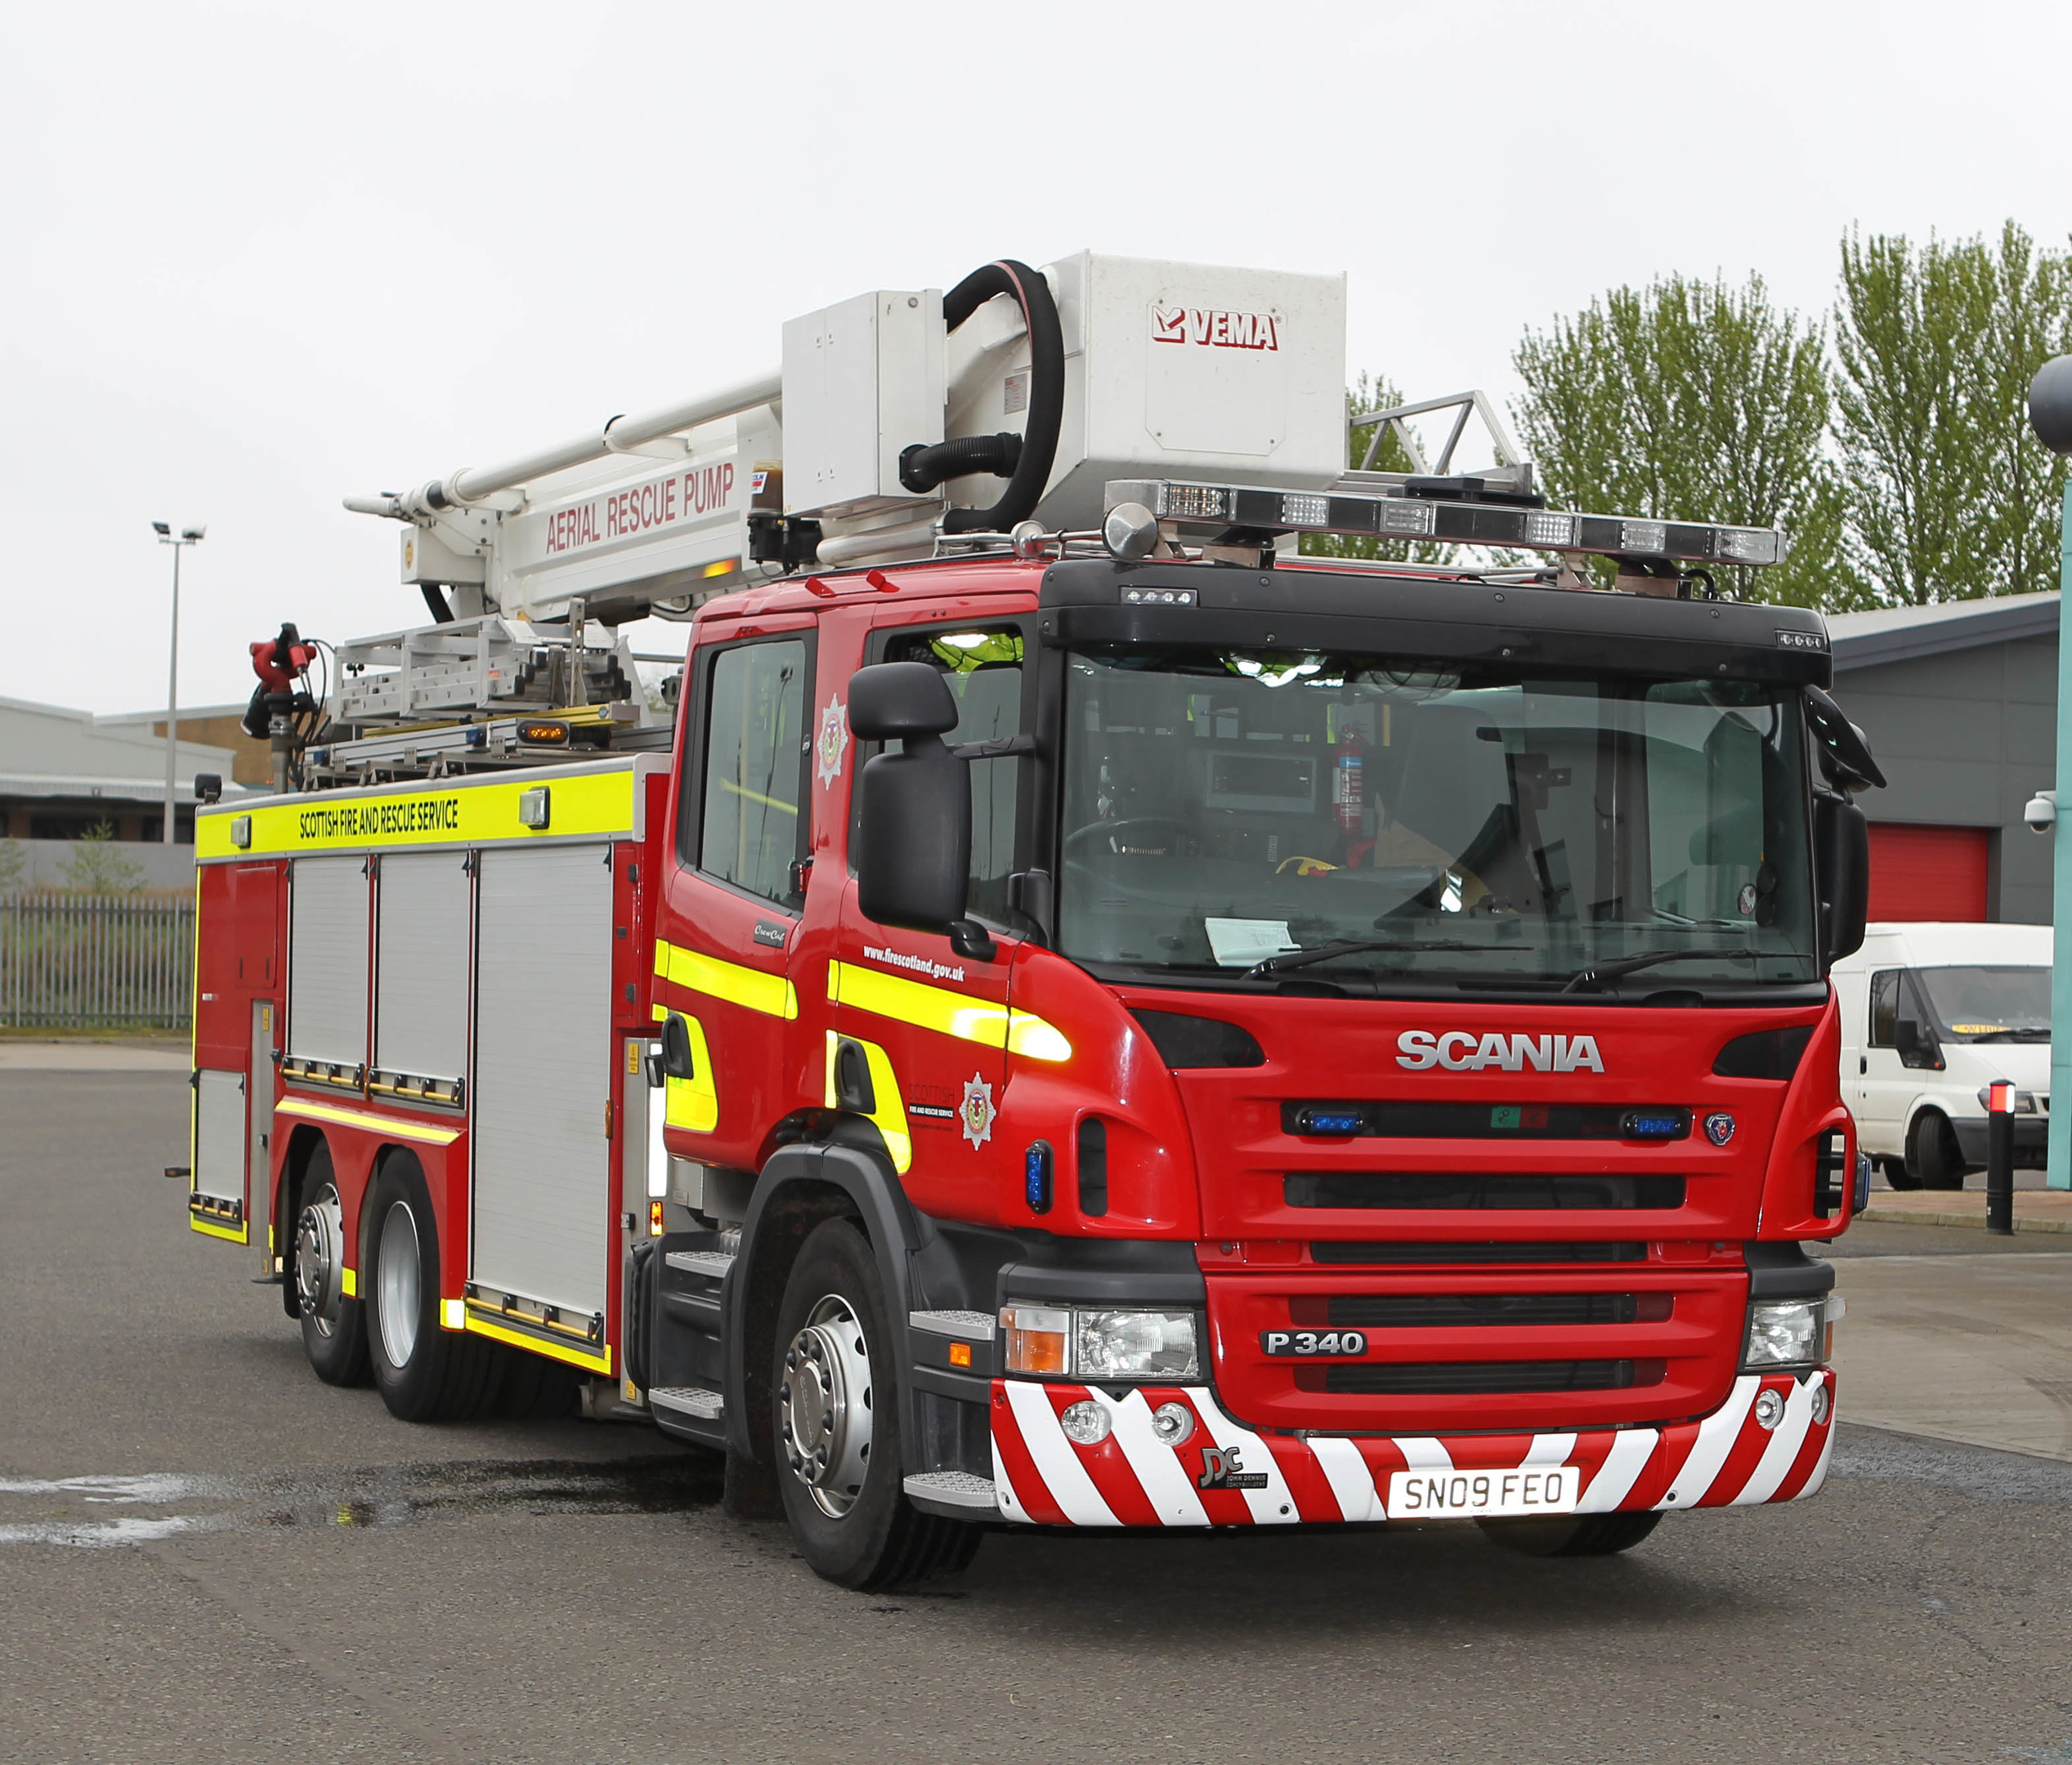 ESF want the amount of electrical fires in Scotland reduced.